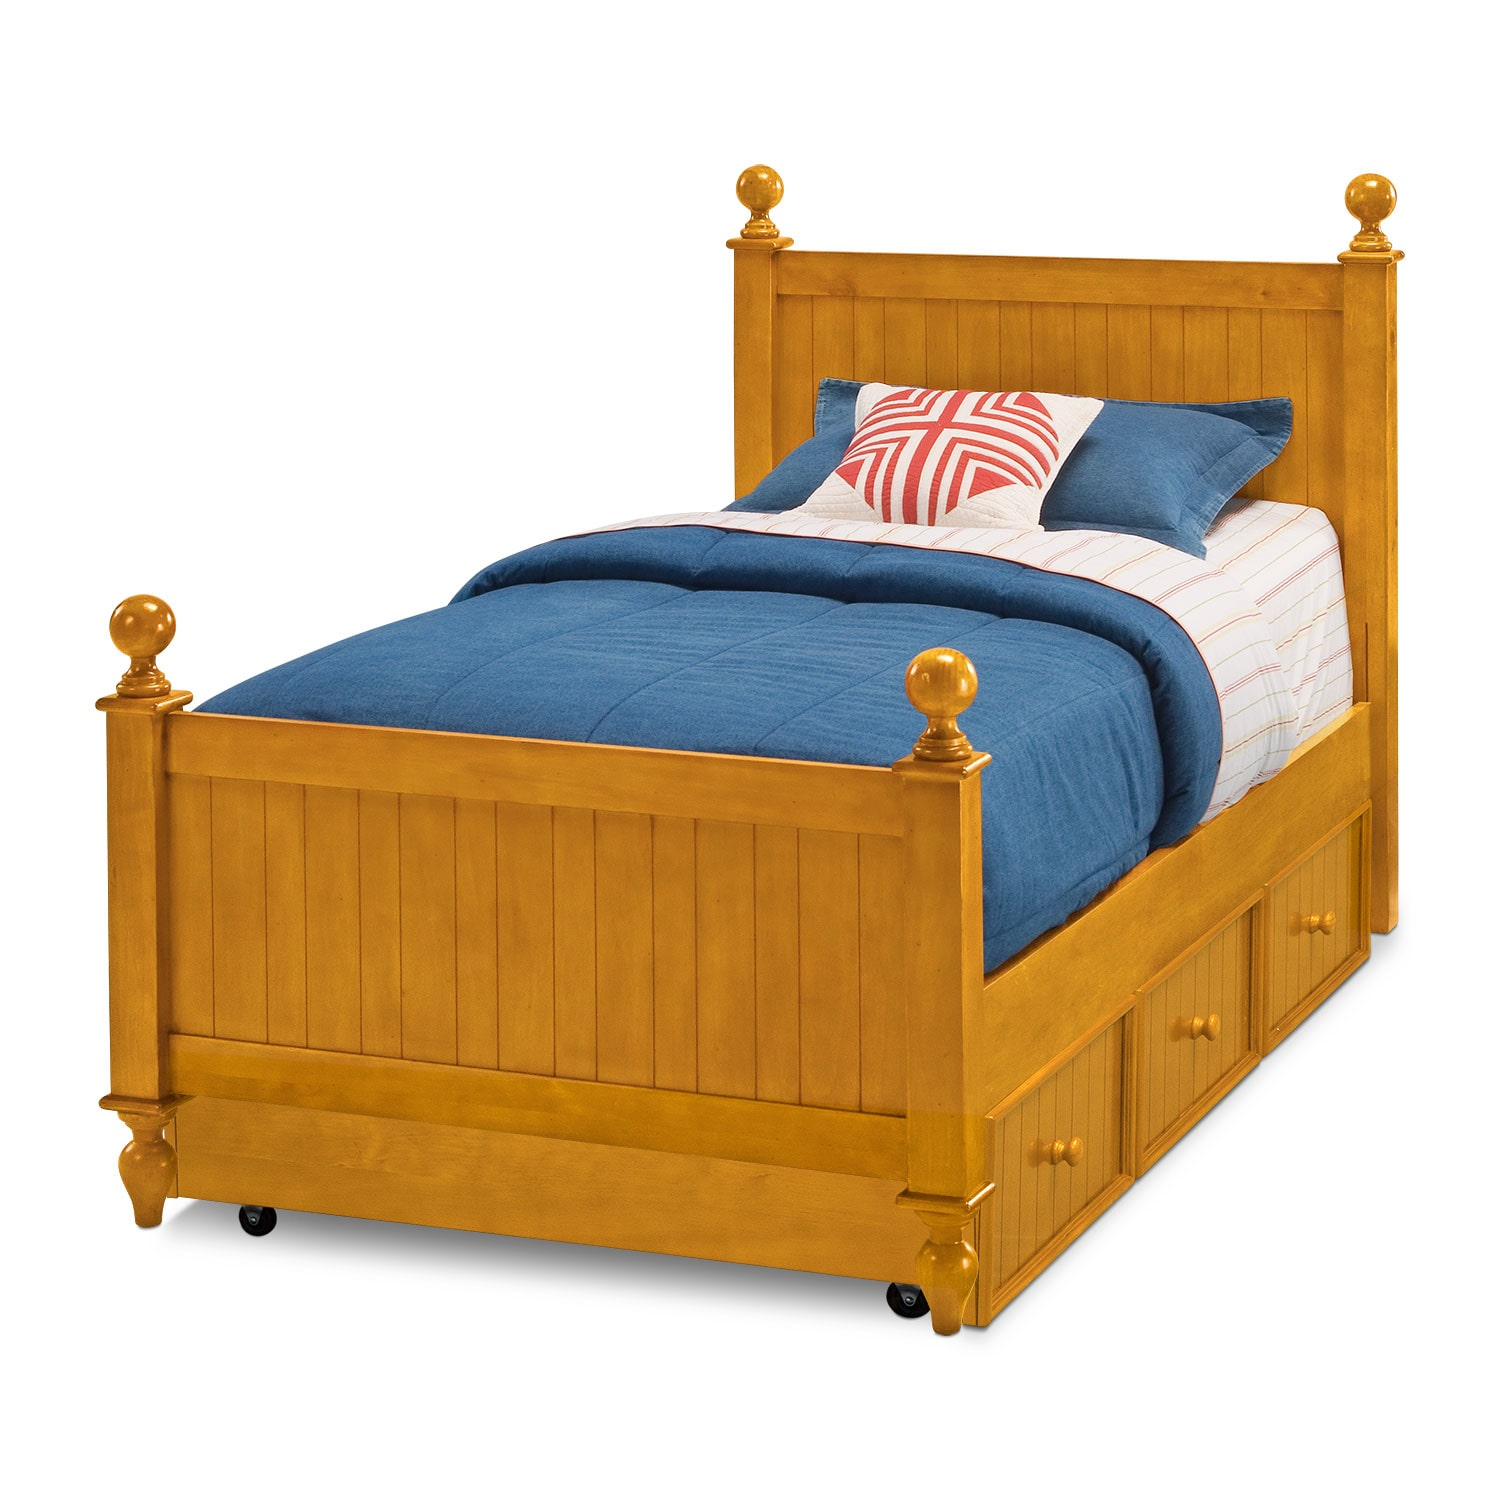 Kids Furniture - Colorworks Pine Full Bed with Trundle